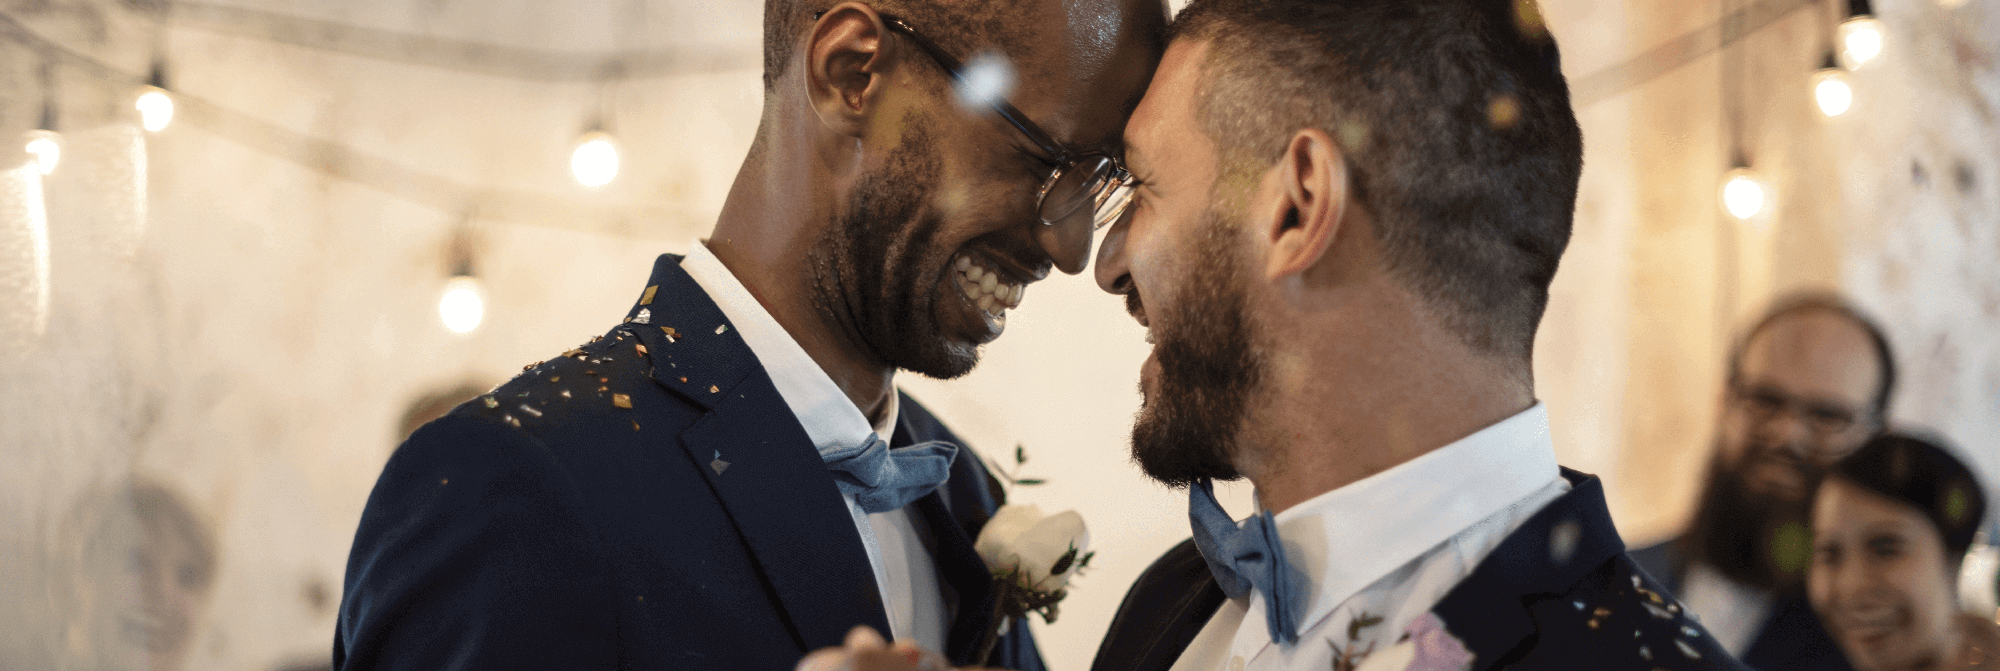 Two males Civil partnership Ceremony